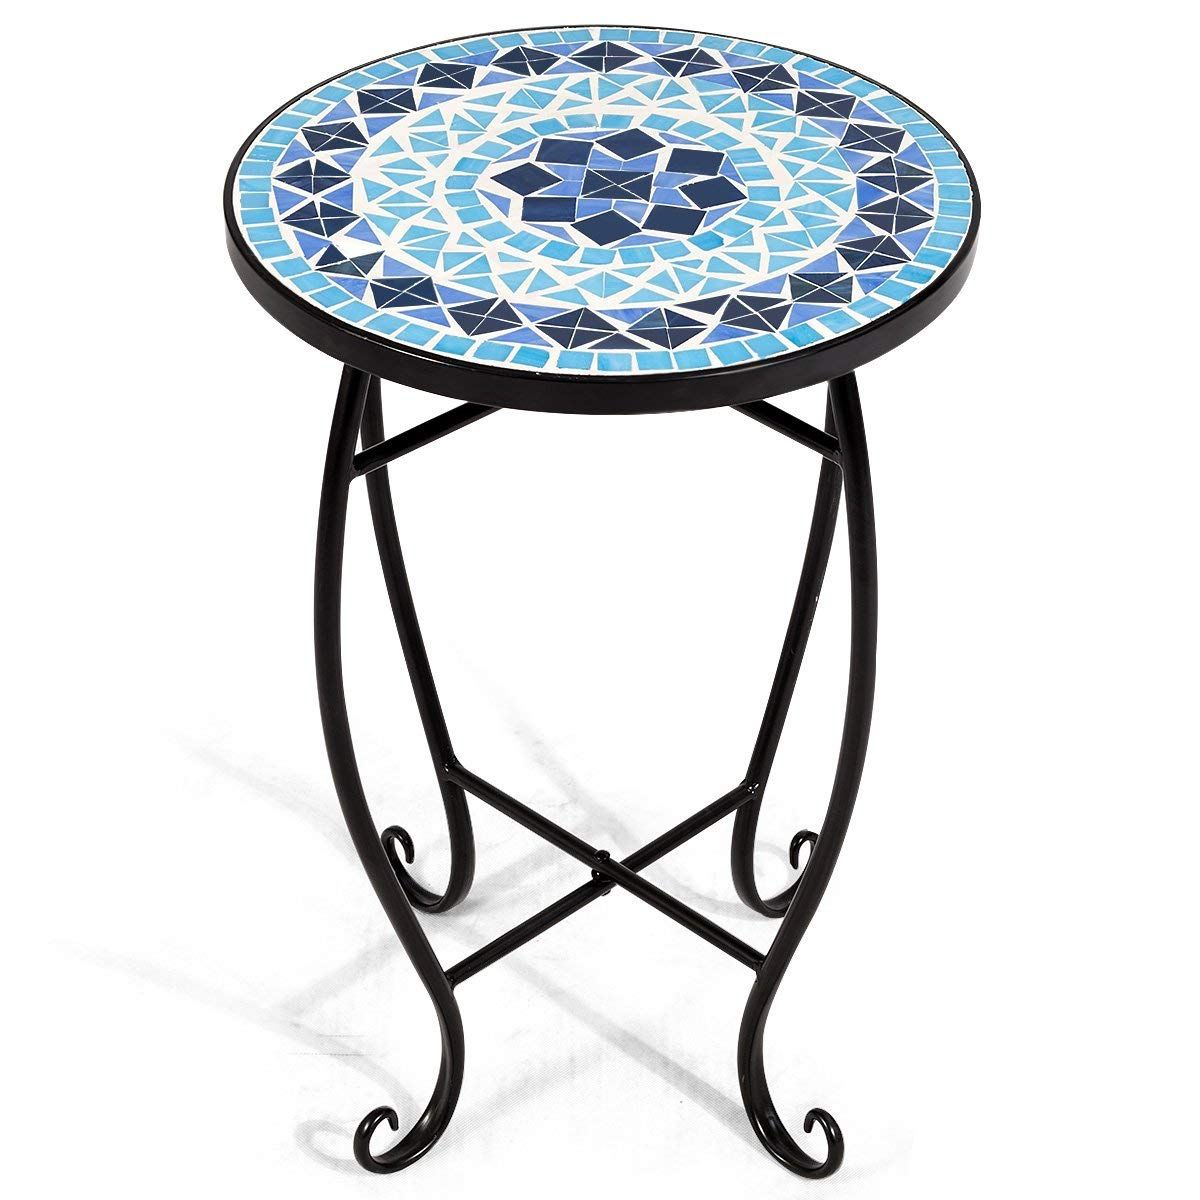 This Is An Adorable Accent Table For Your Patio Porch Balcony